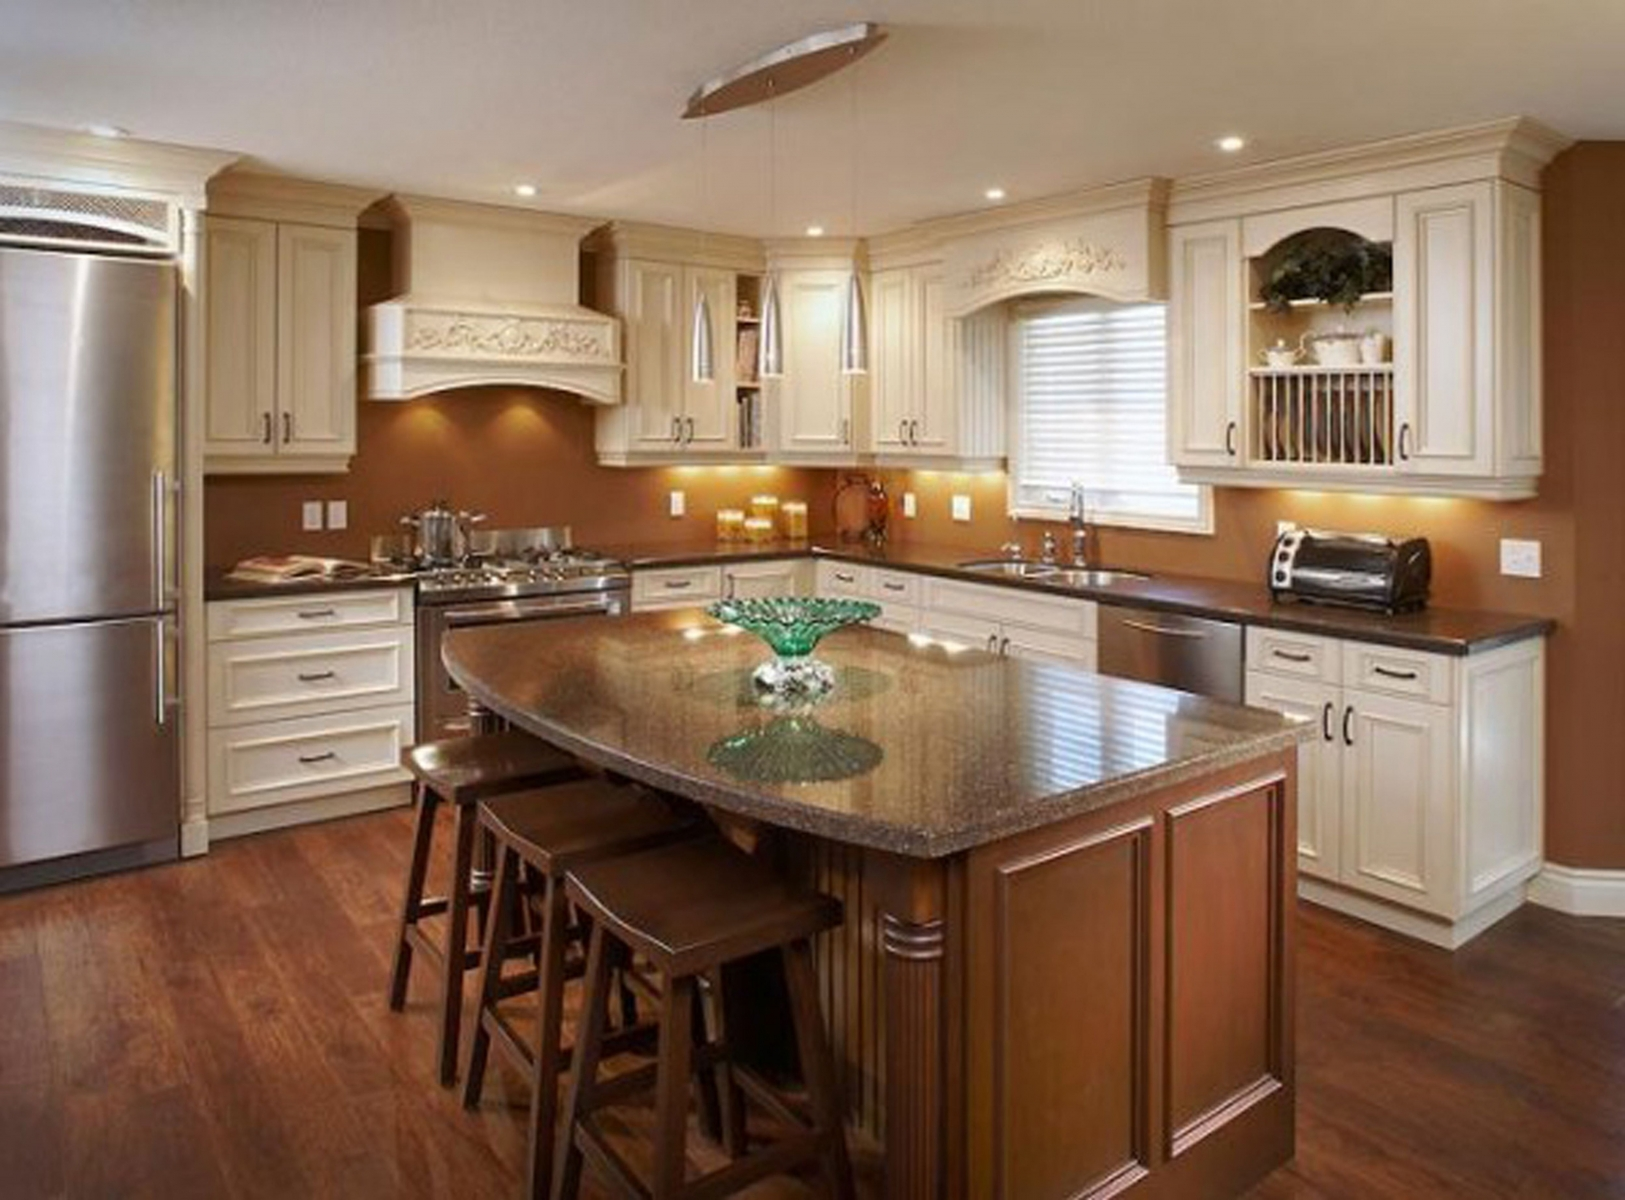 What Is A Kitchen: Kitchen Remodeling Contractor: Cabinets, Counters, Flooring